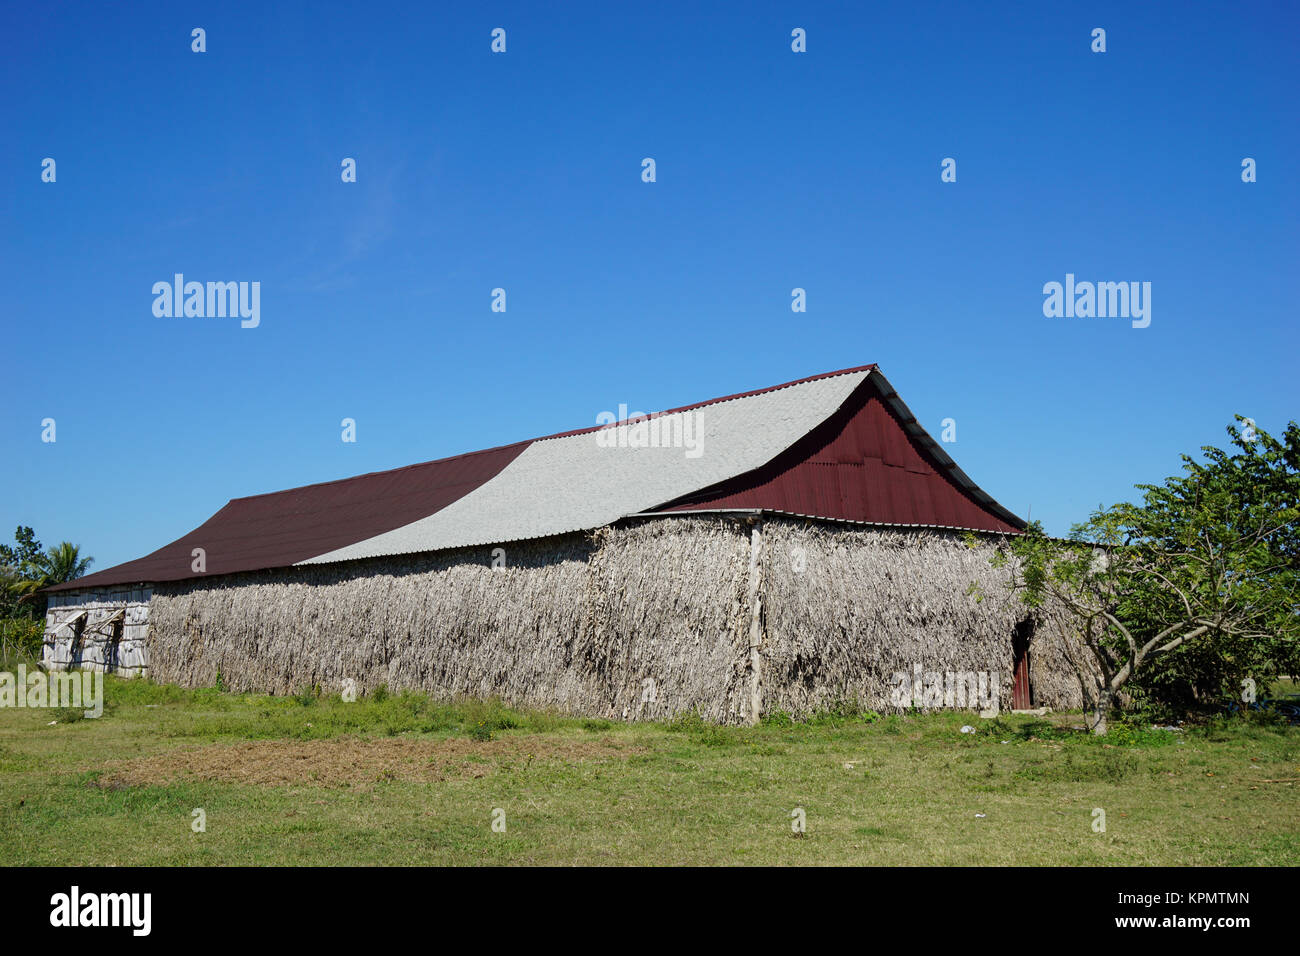 Tropical Agriculture Building - Stock Image